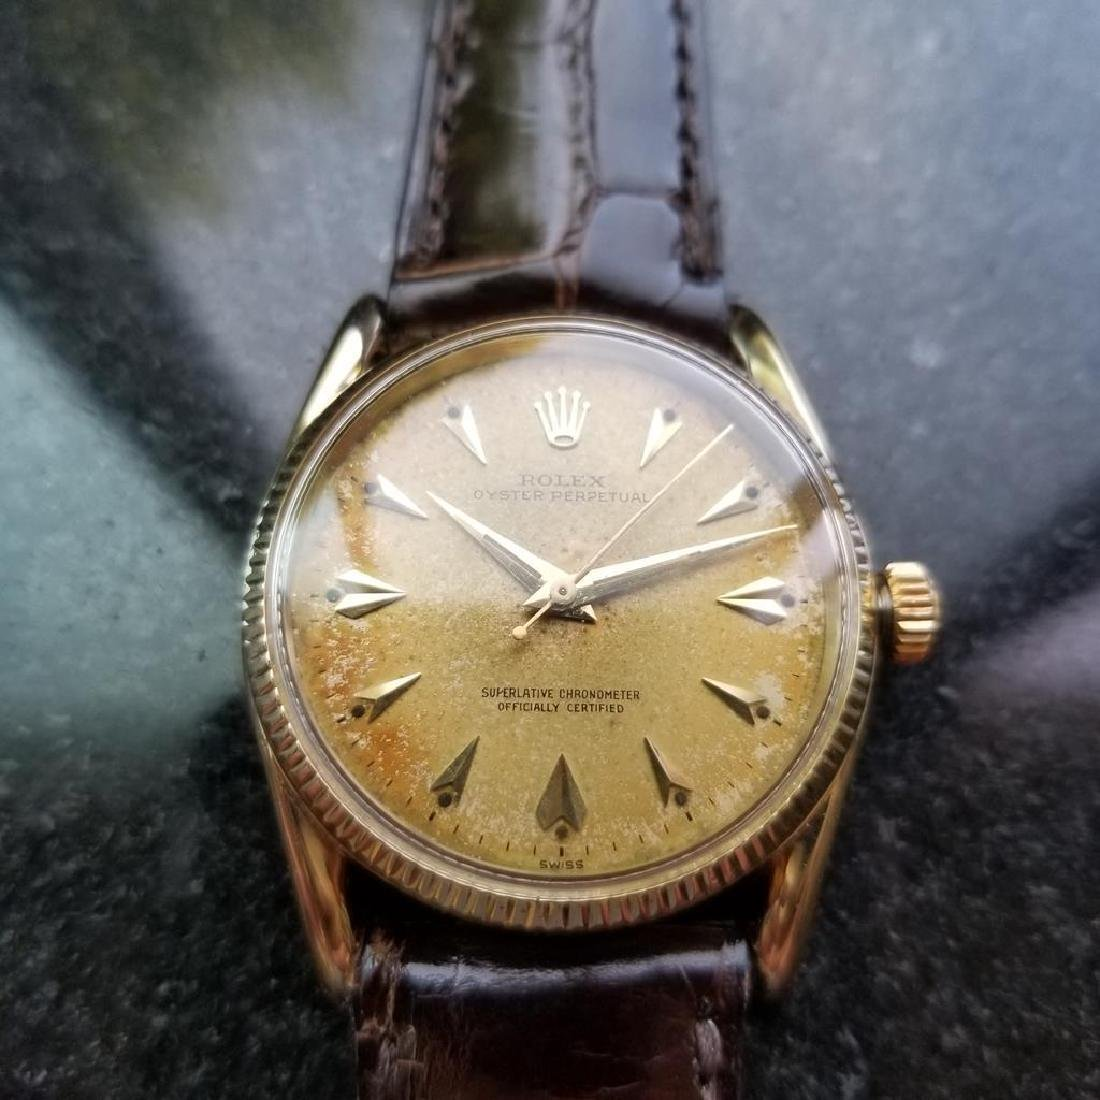 ROLEX Men's 14K Gold Oyster Perpetual 1011 Bombay - 4